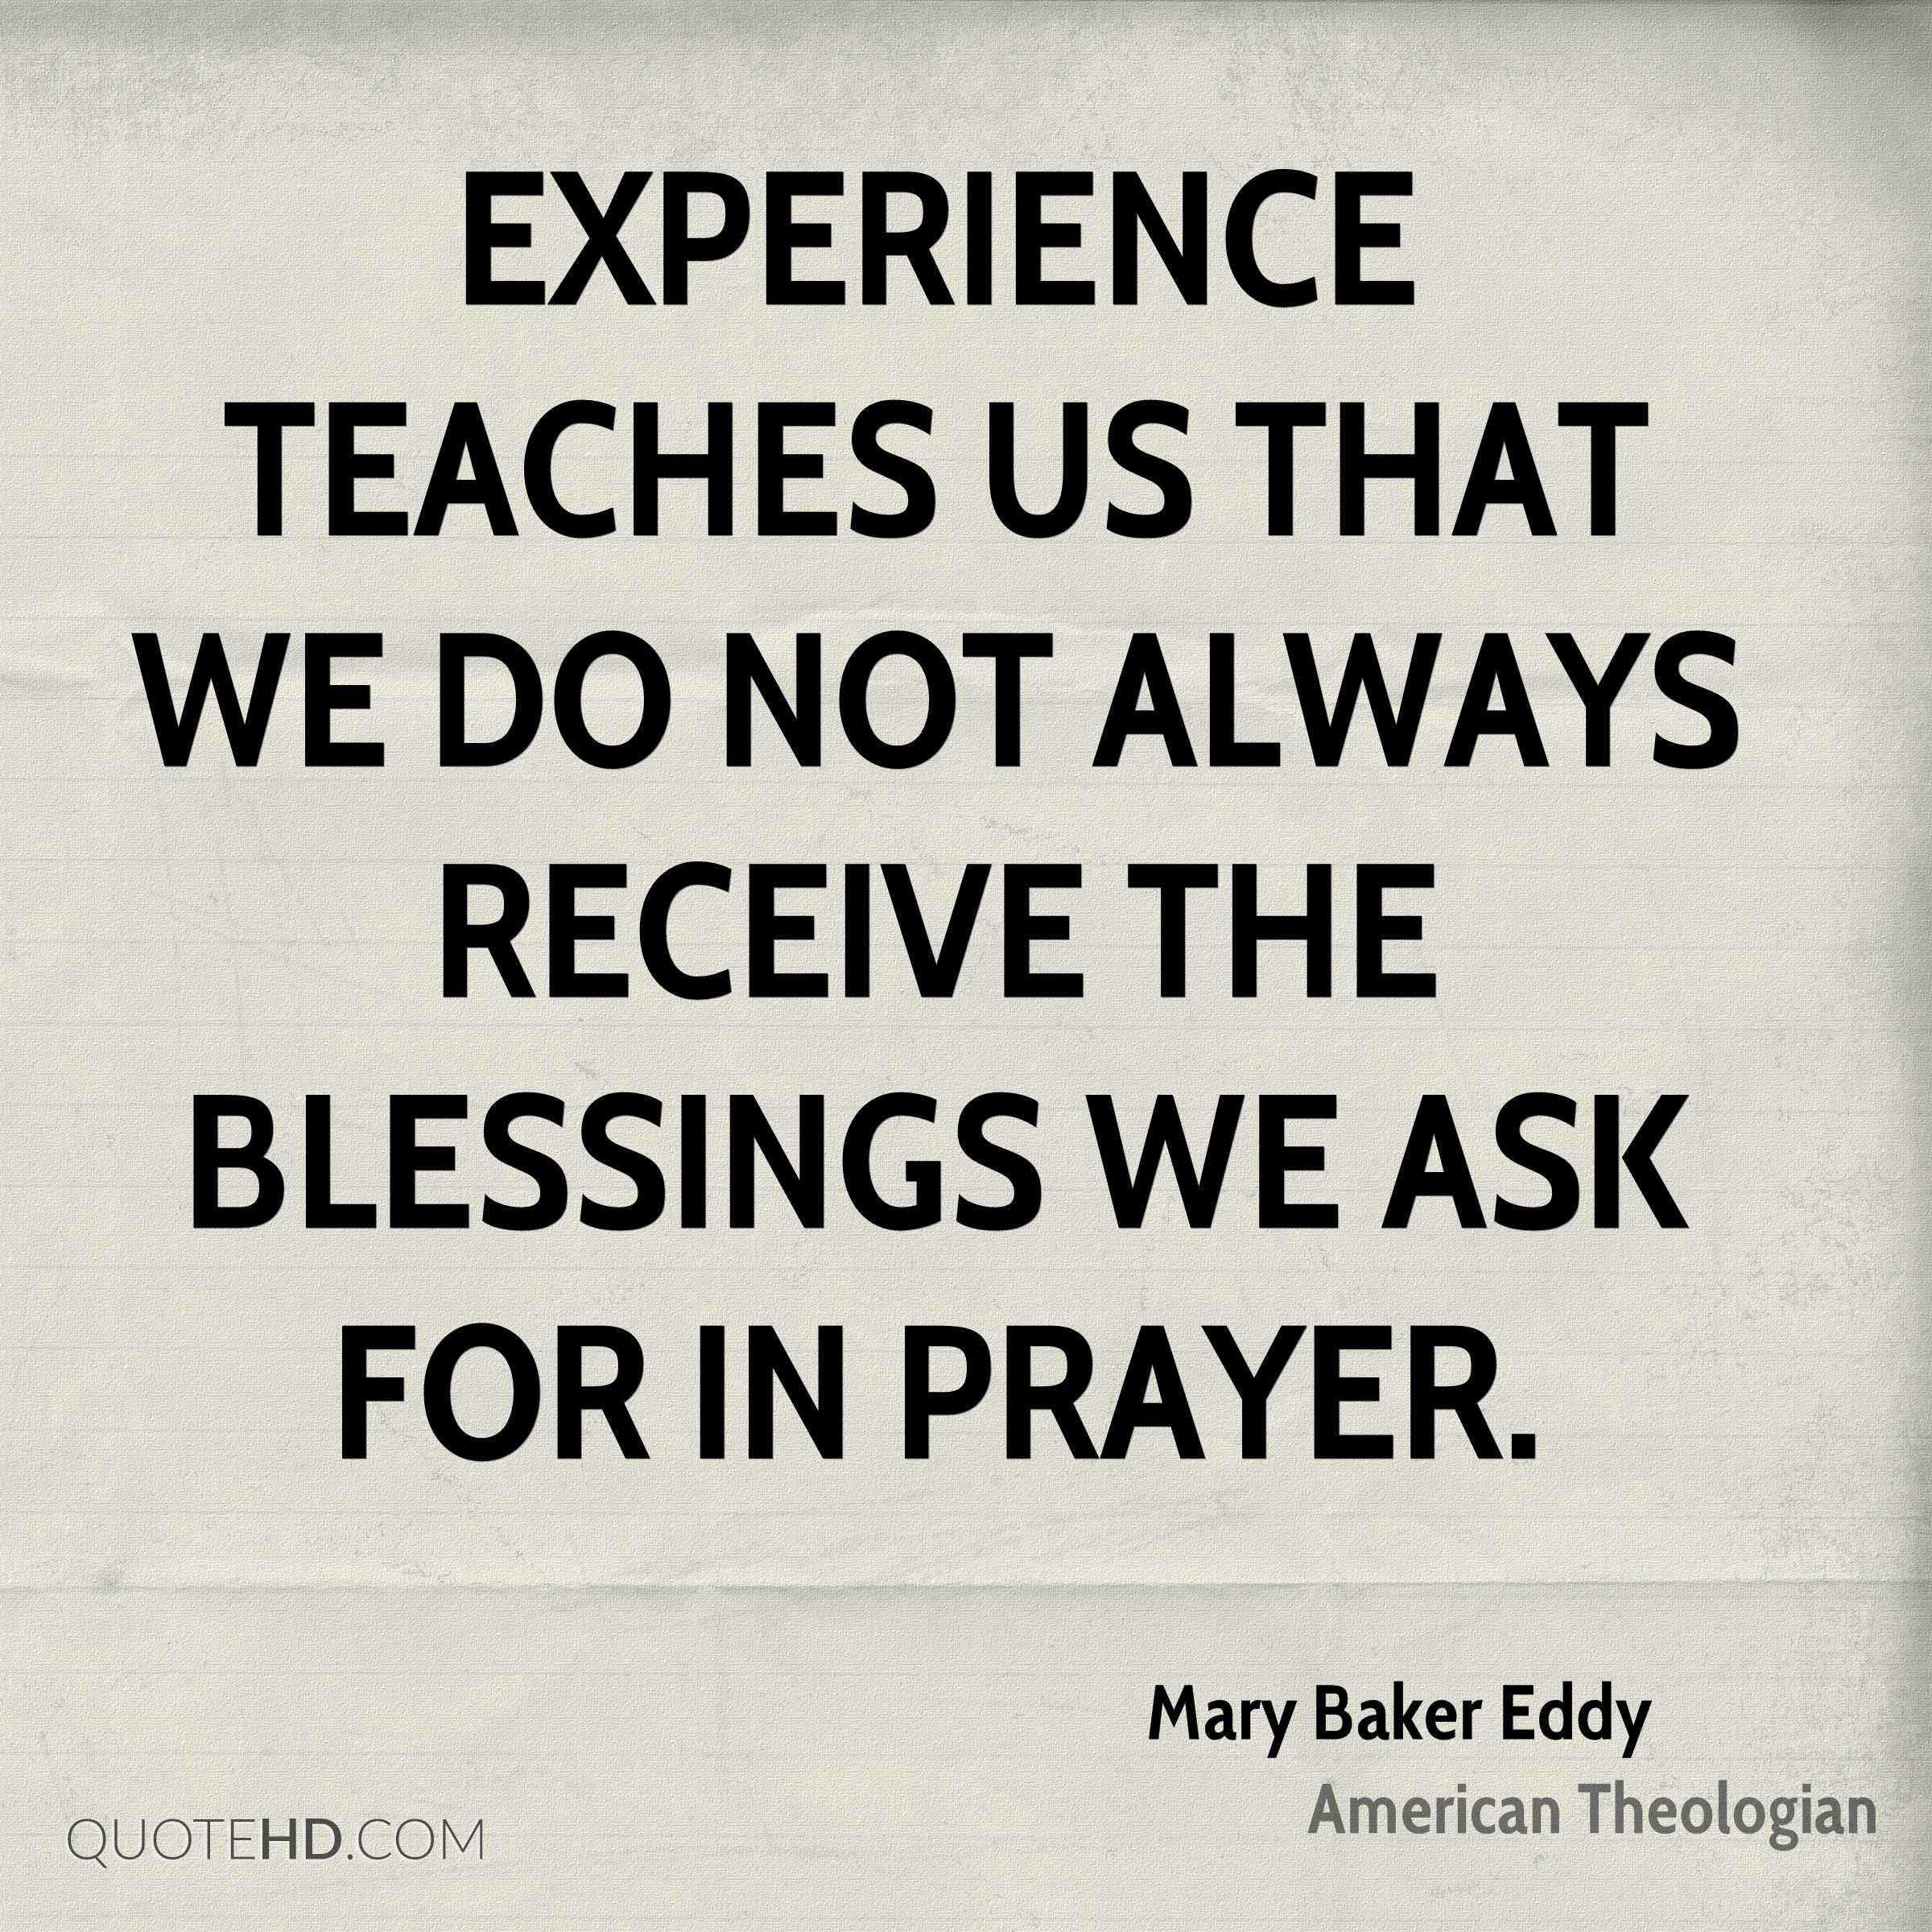 Experience teaches us that we do not always receive the blessings we ask for in prayer.